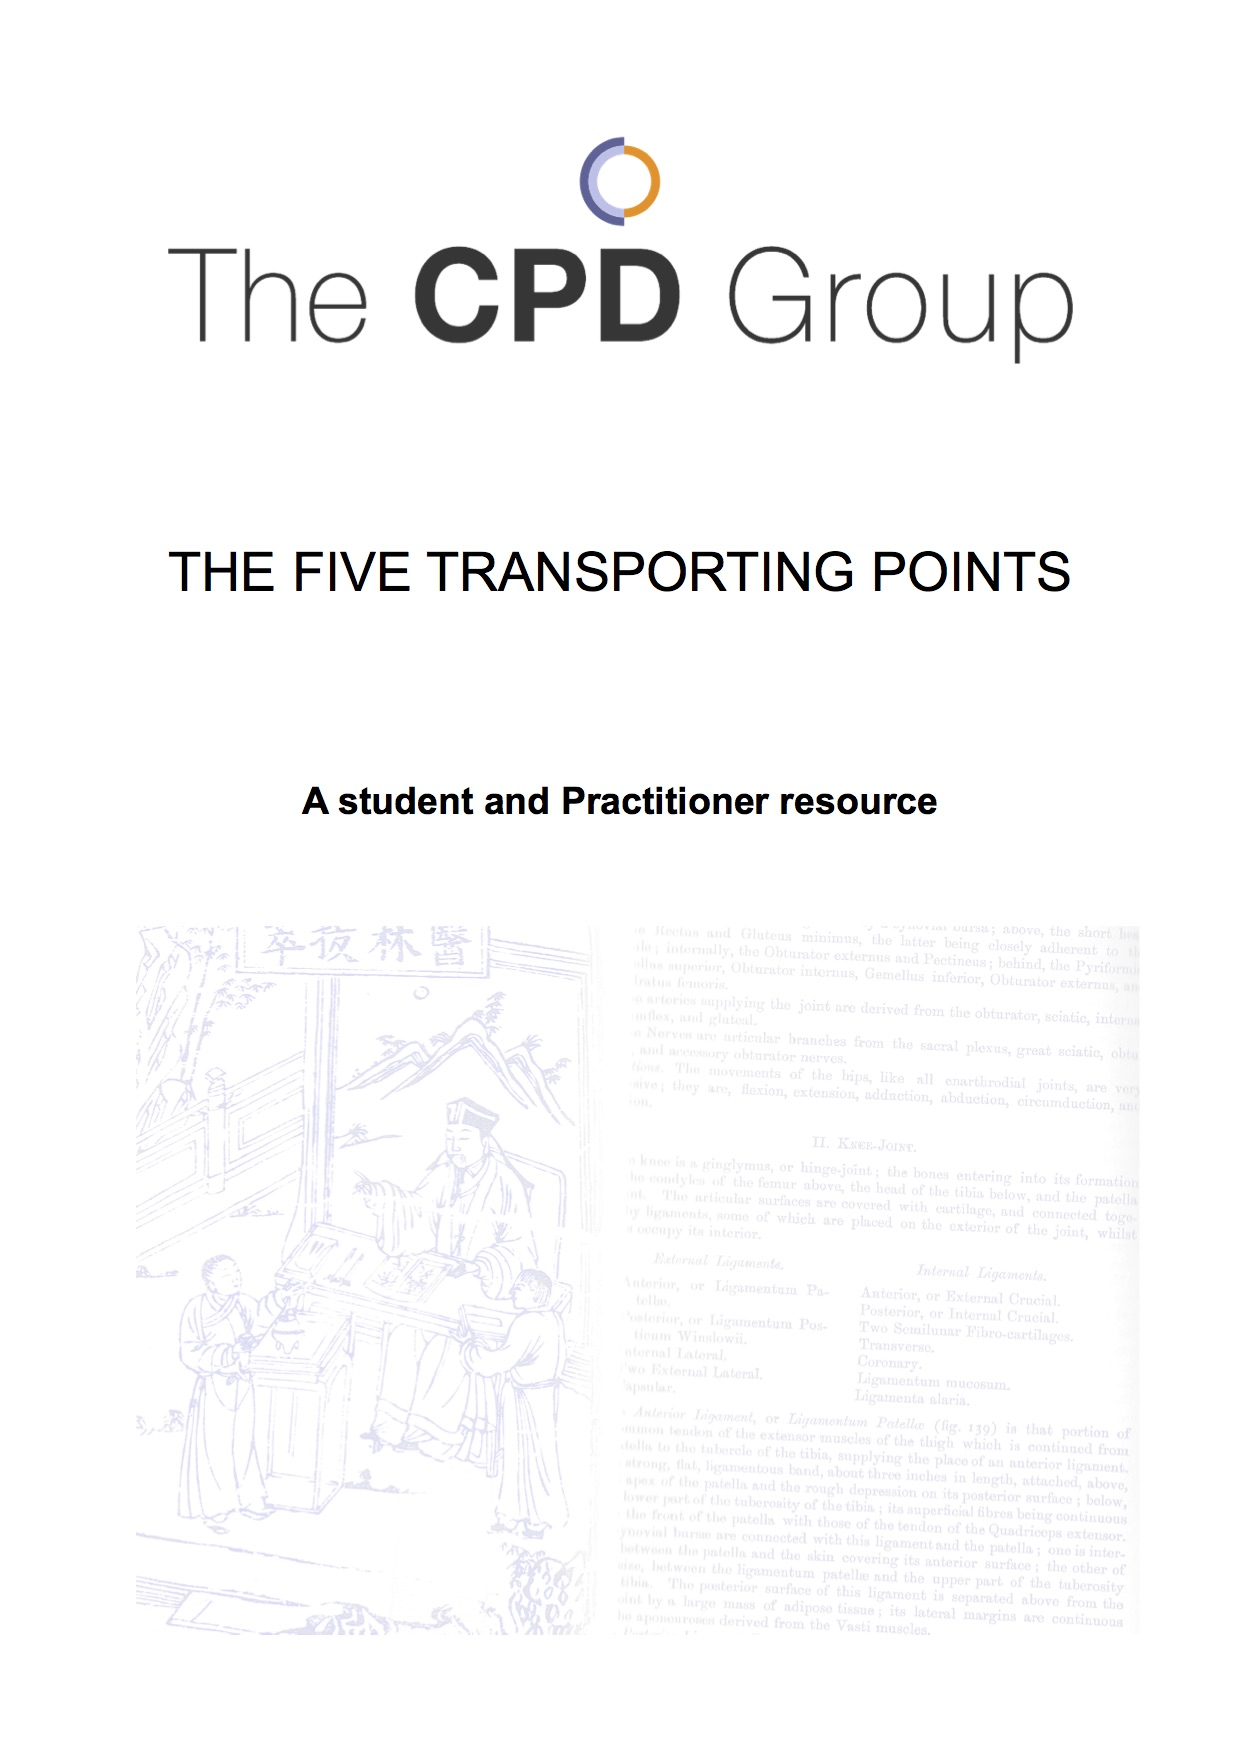 CPDG 5 Transporting points student help sheet